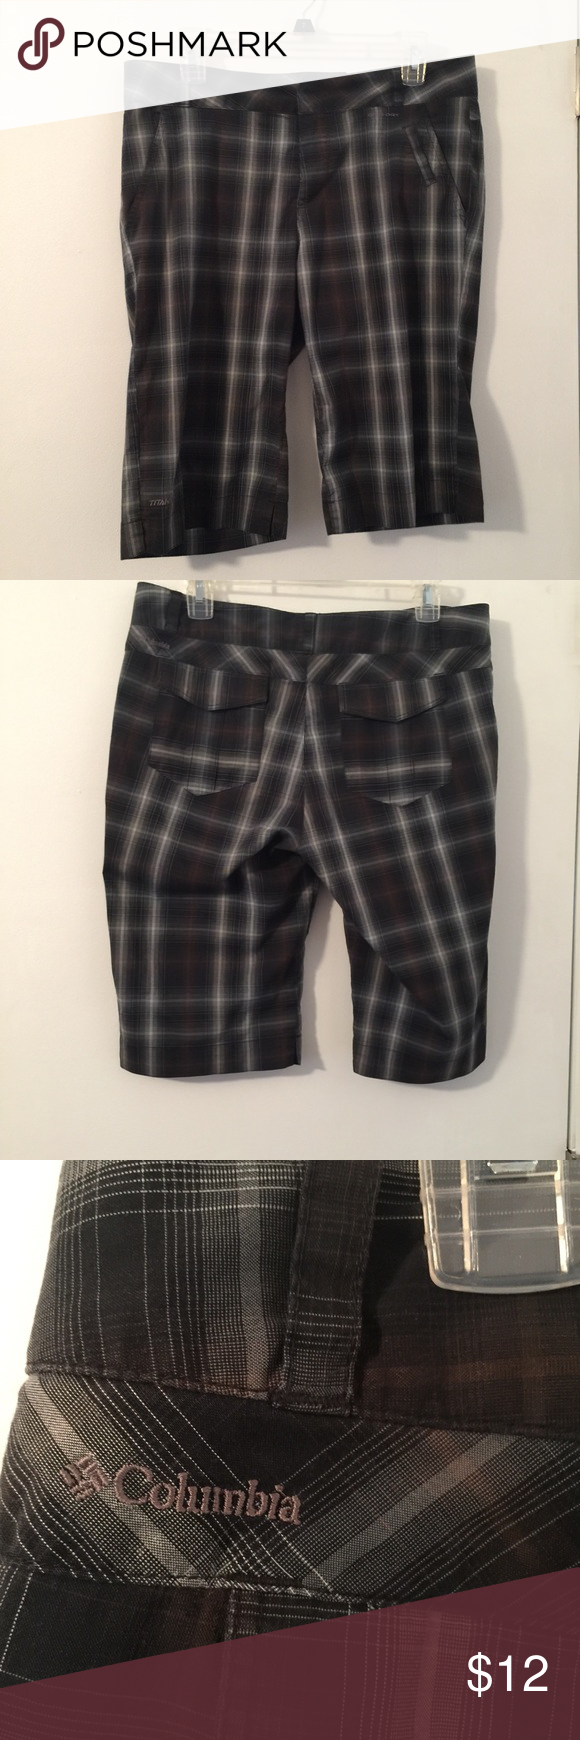 Columbia Shorts Worn once! Excellent condition! Columbia Shorts Bermudas